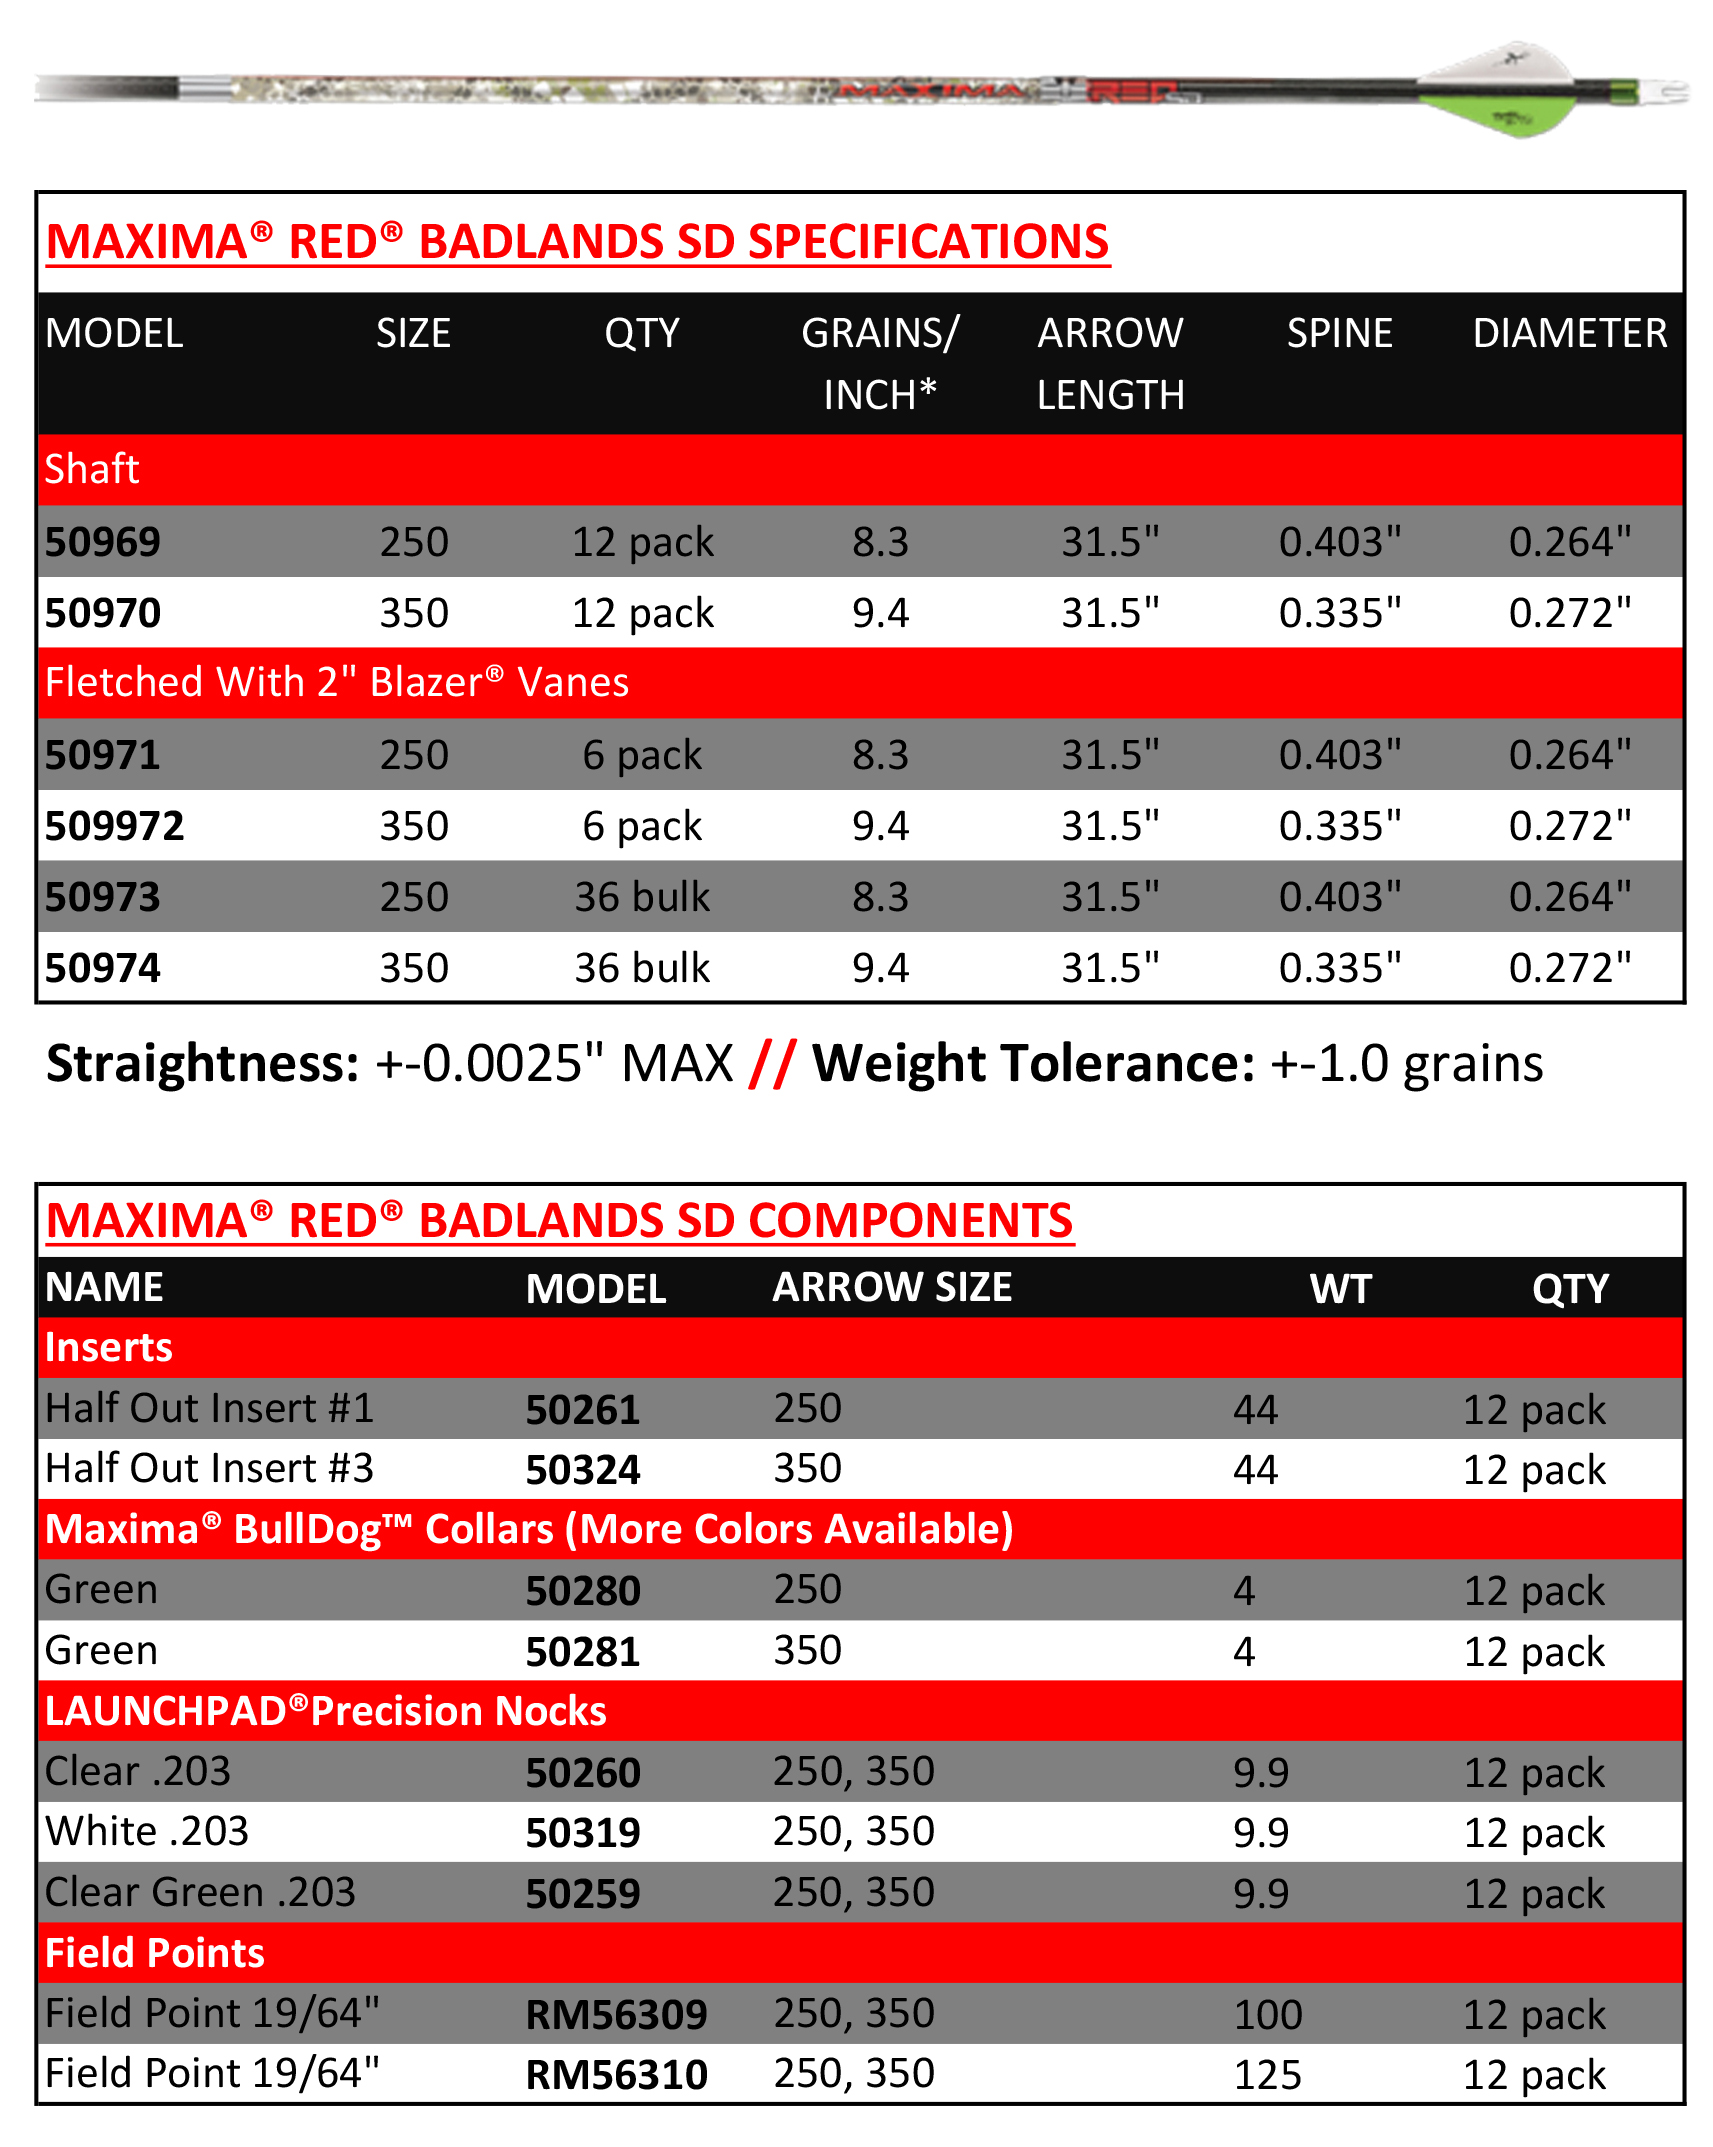 cx-maxima-red-badlands-sd-chart.jpg